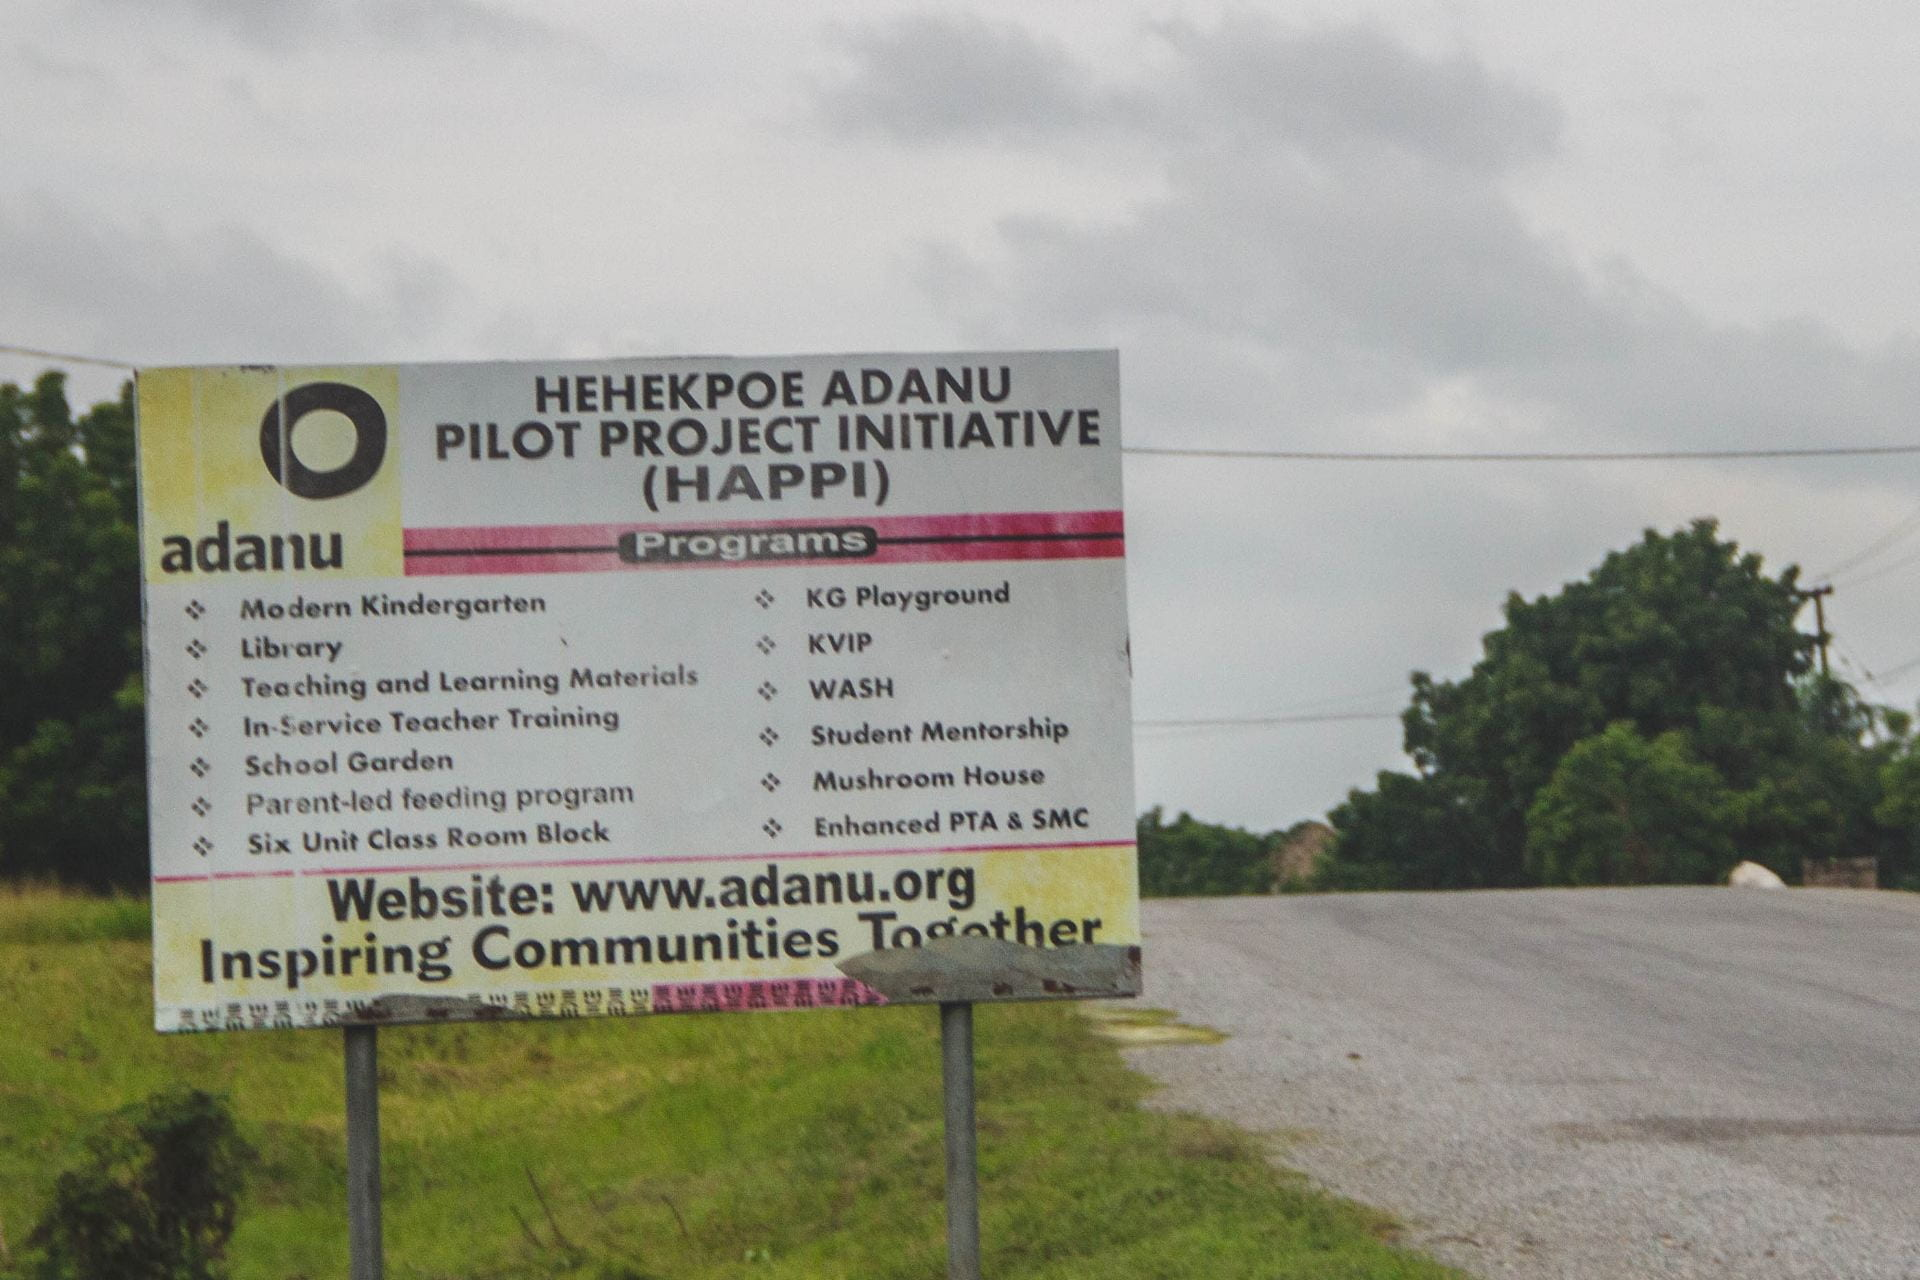 The sign outside of the village we visited. It lists the various projects the village is partnering with Adanu on.